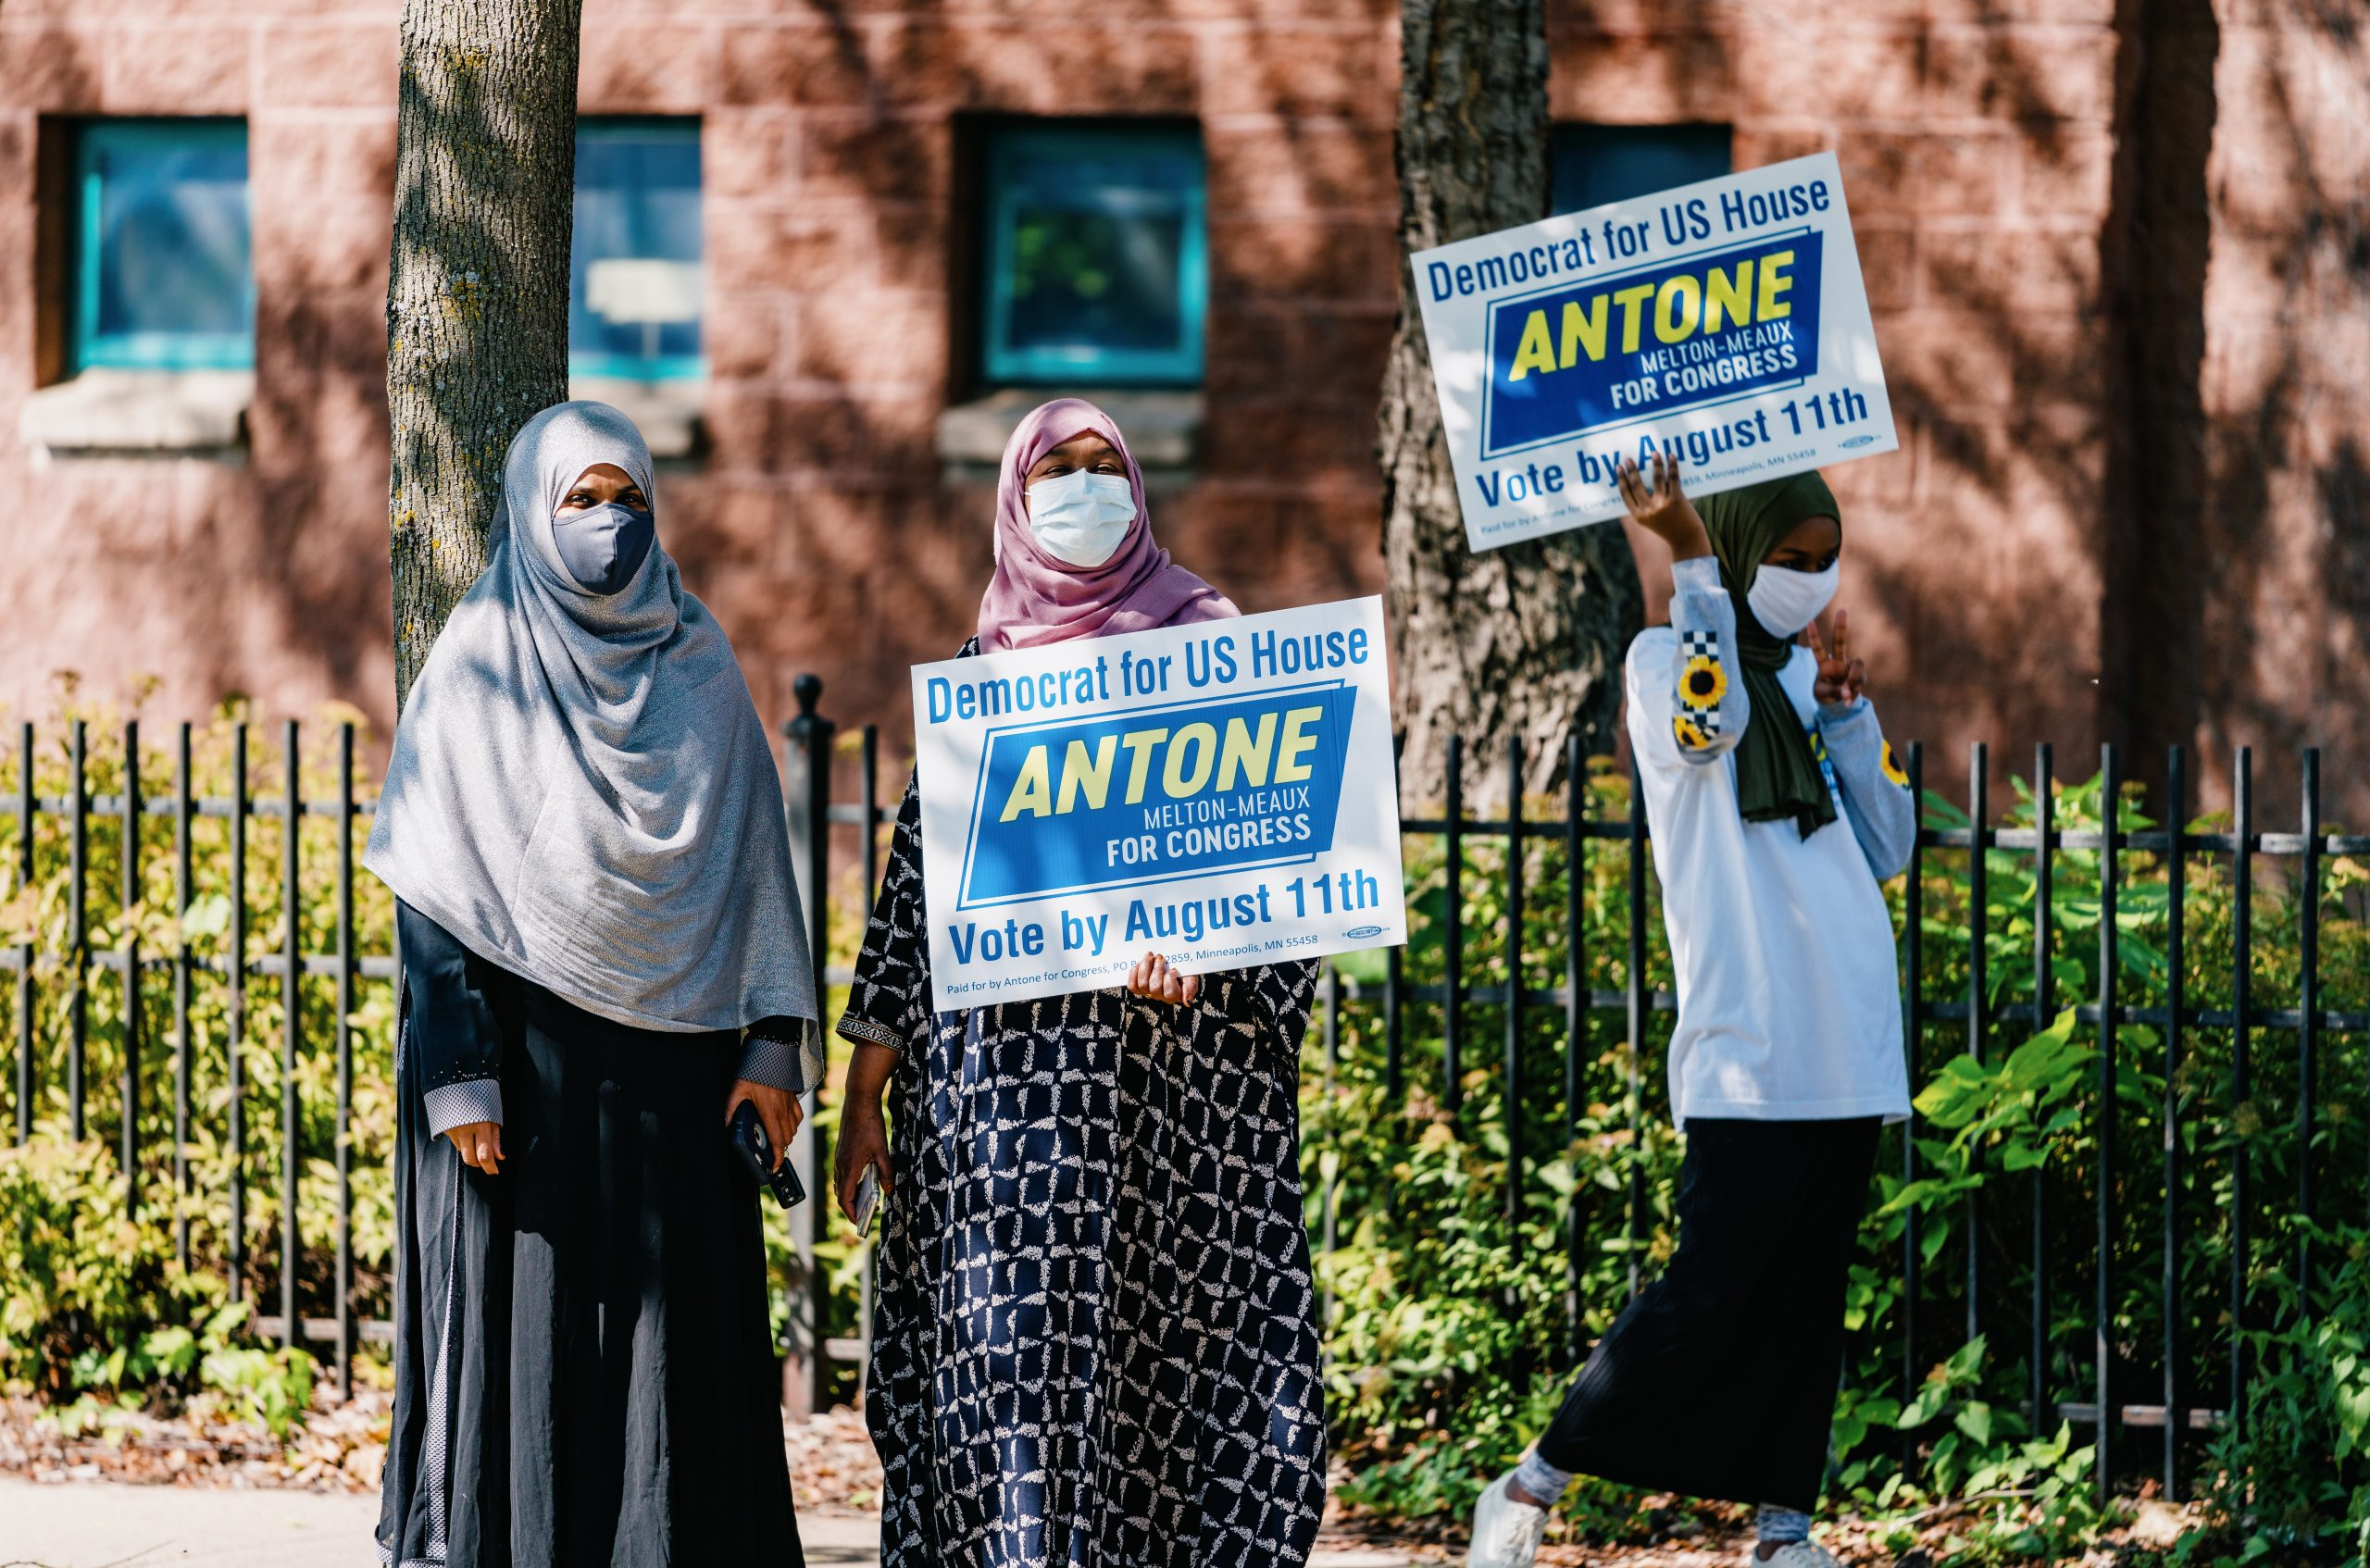 Three people wearing masks hold signs in support of Antone Melton-Meaux, a primary candidate for U.S. Representative